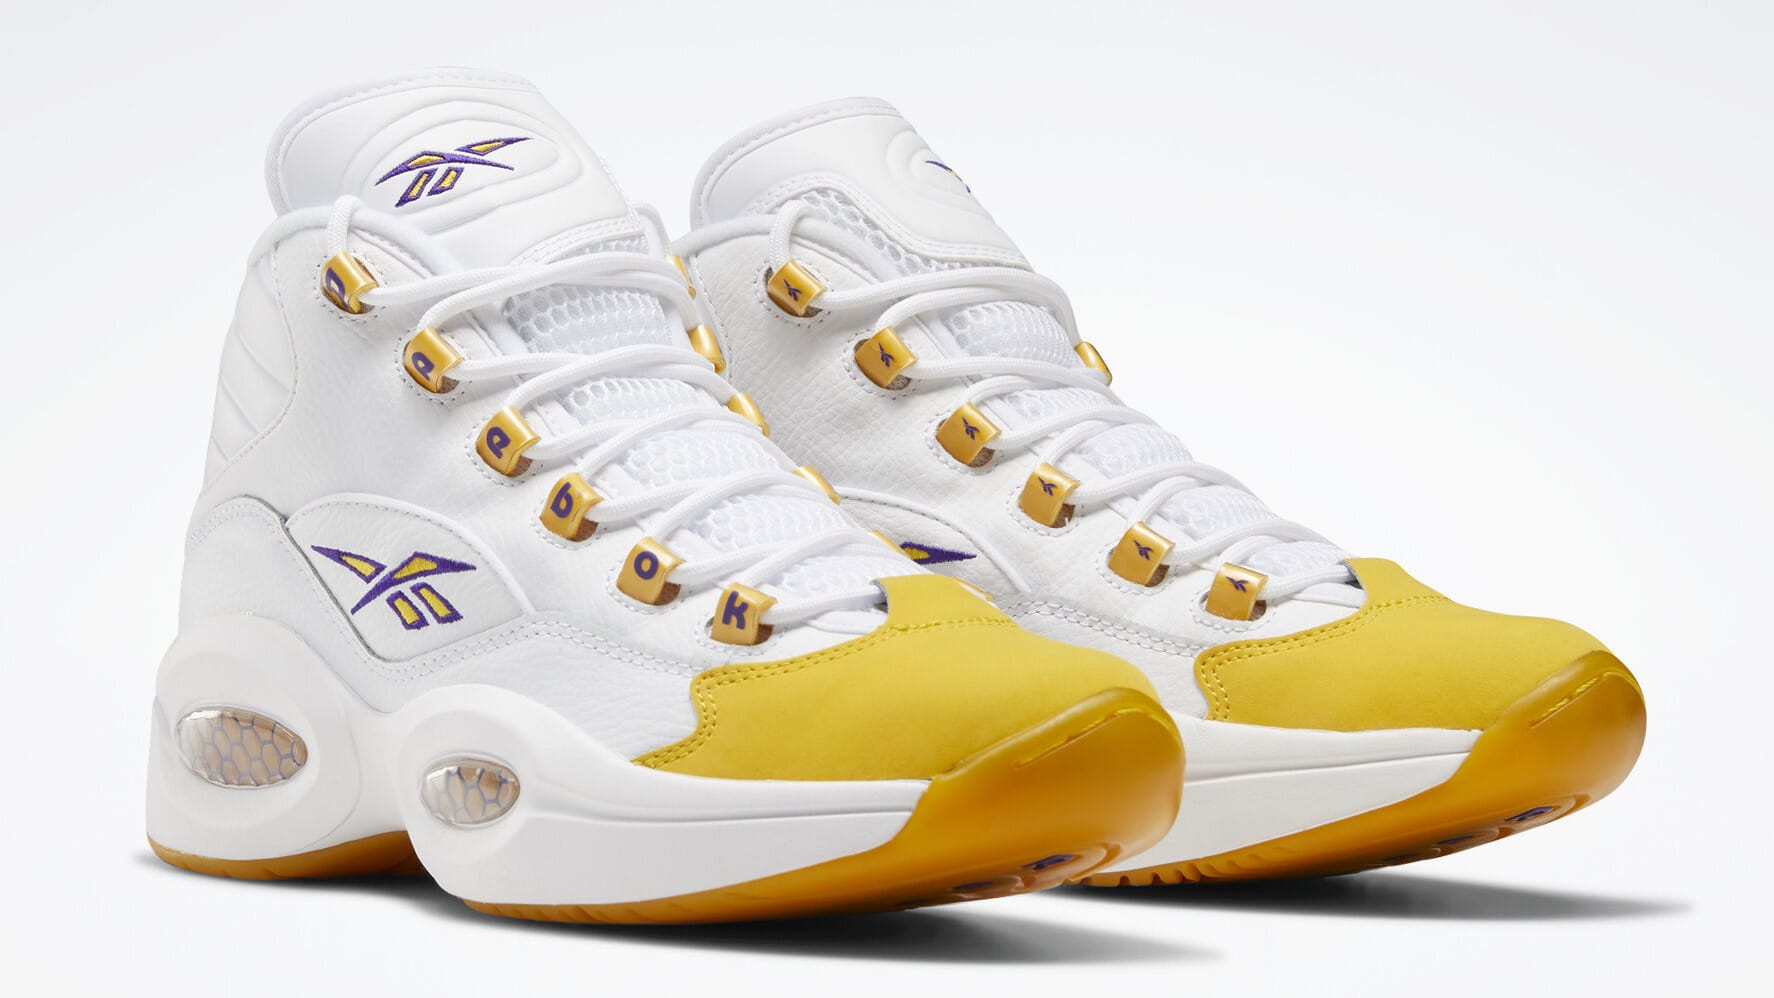 Reebok Question Kobe Yellow Toe Release Date Pair